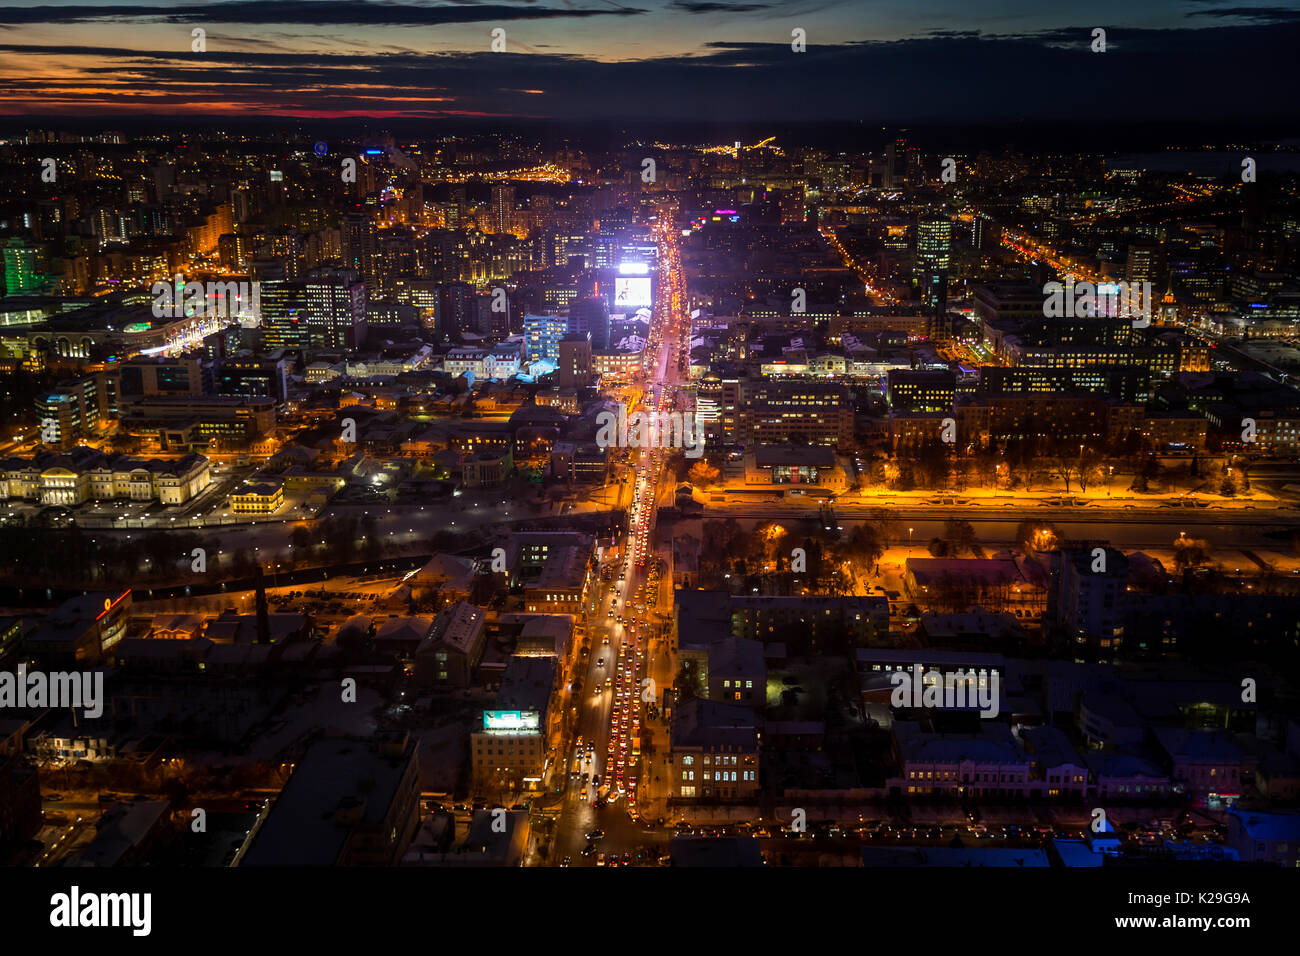 Ekaterinburg at night. The beautiful appearance is tantamount to the fact that it is regarded as AIDS and drug capital in Russia. - Stock Image